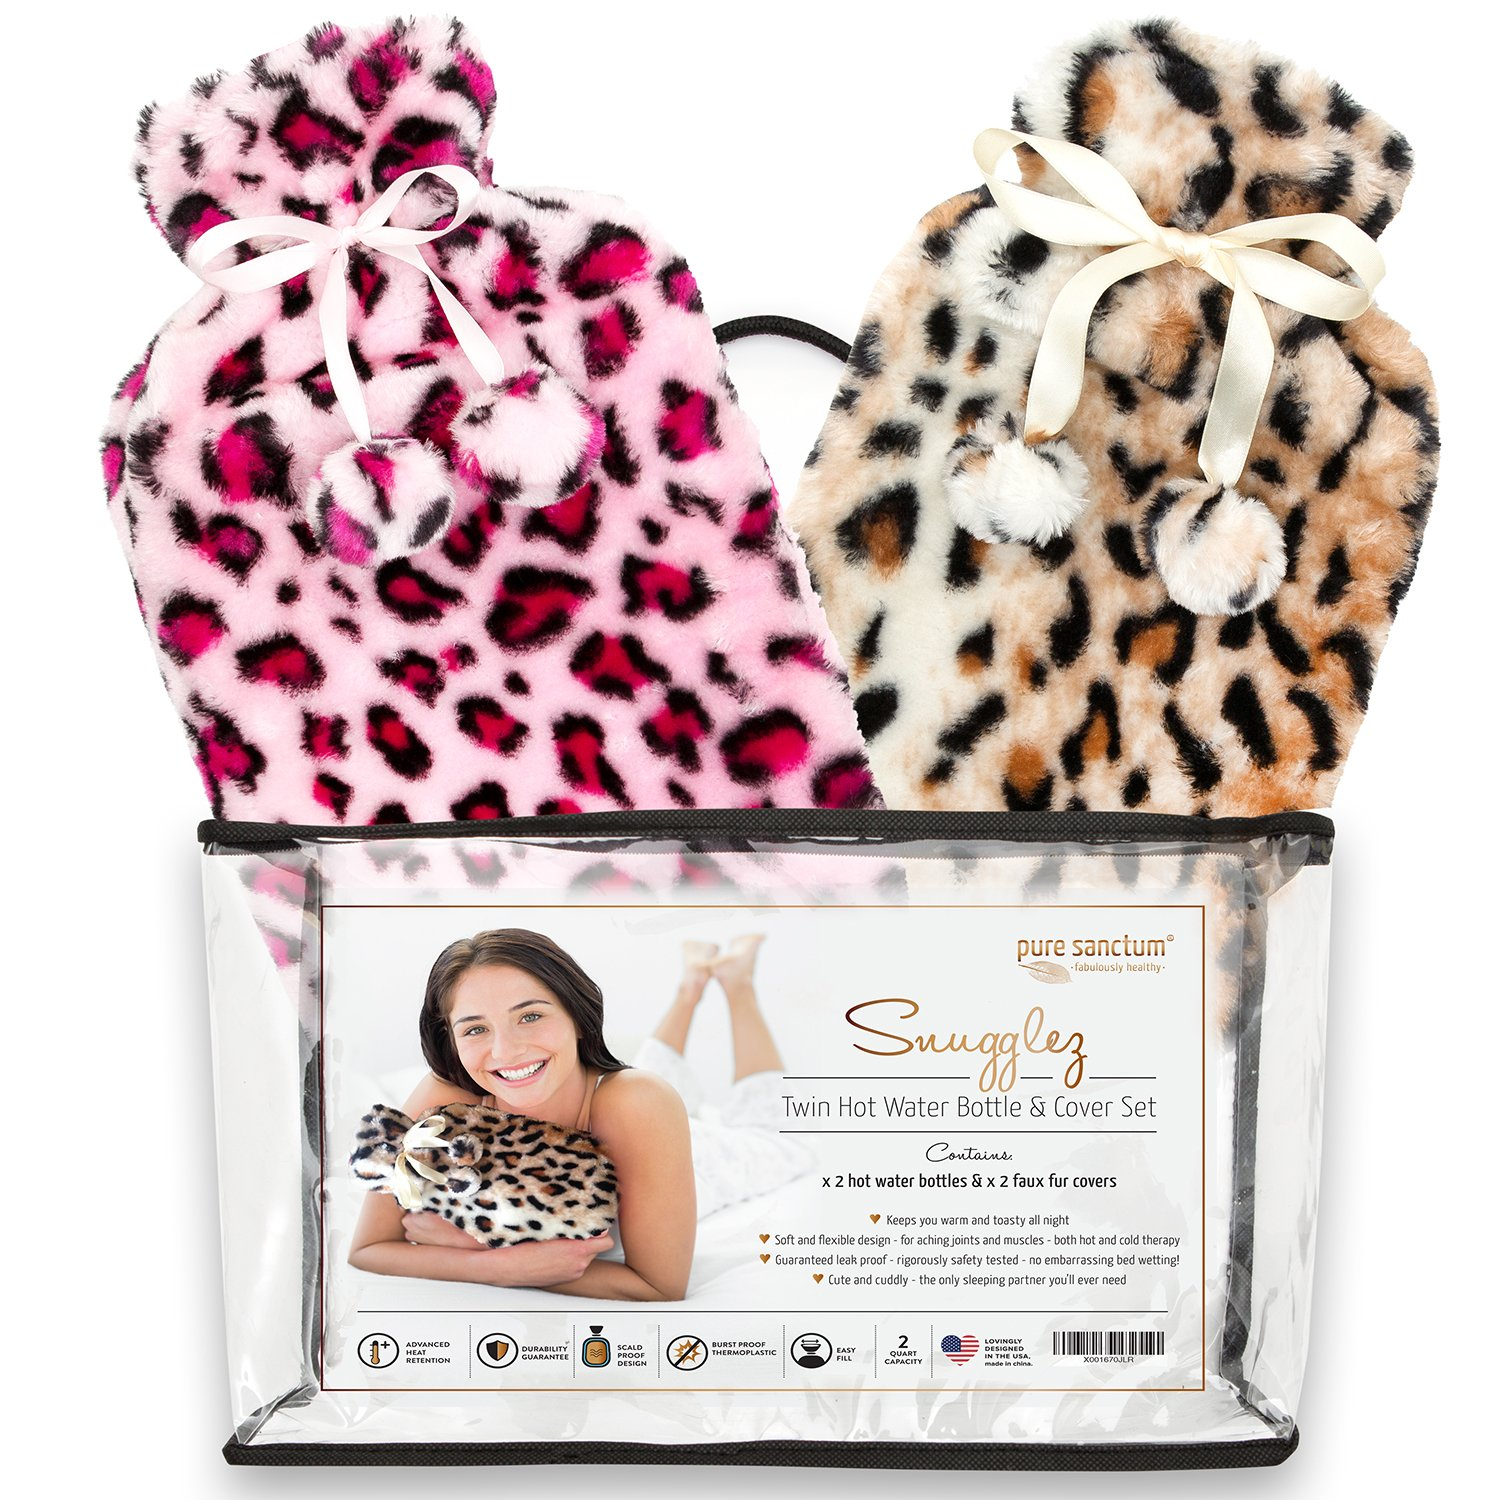 Hot Water Bottle & Cover - Set of 2 Hot Water Bottles & Furry Animal Print Covers for Hot & Cold Relief – Meet Snugglez